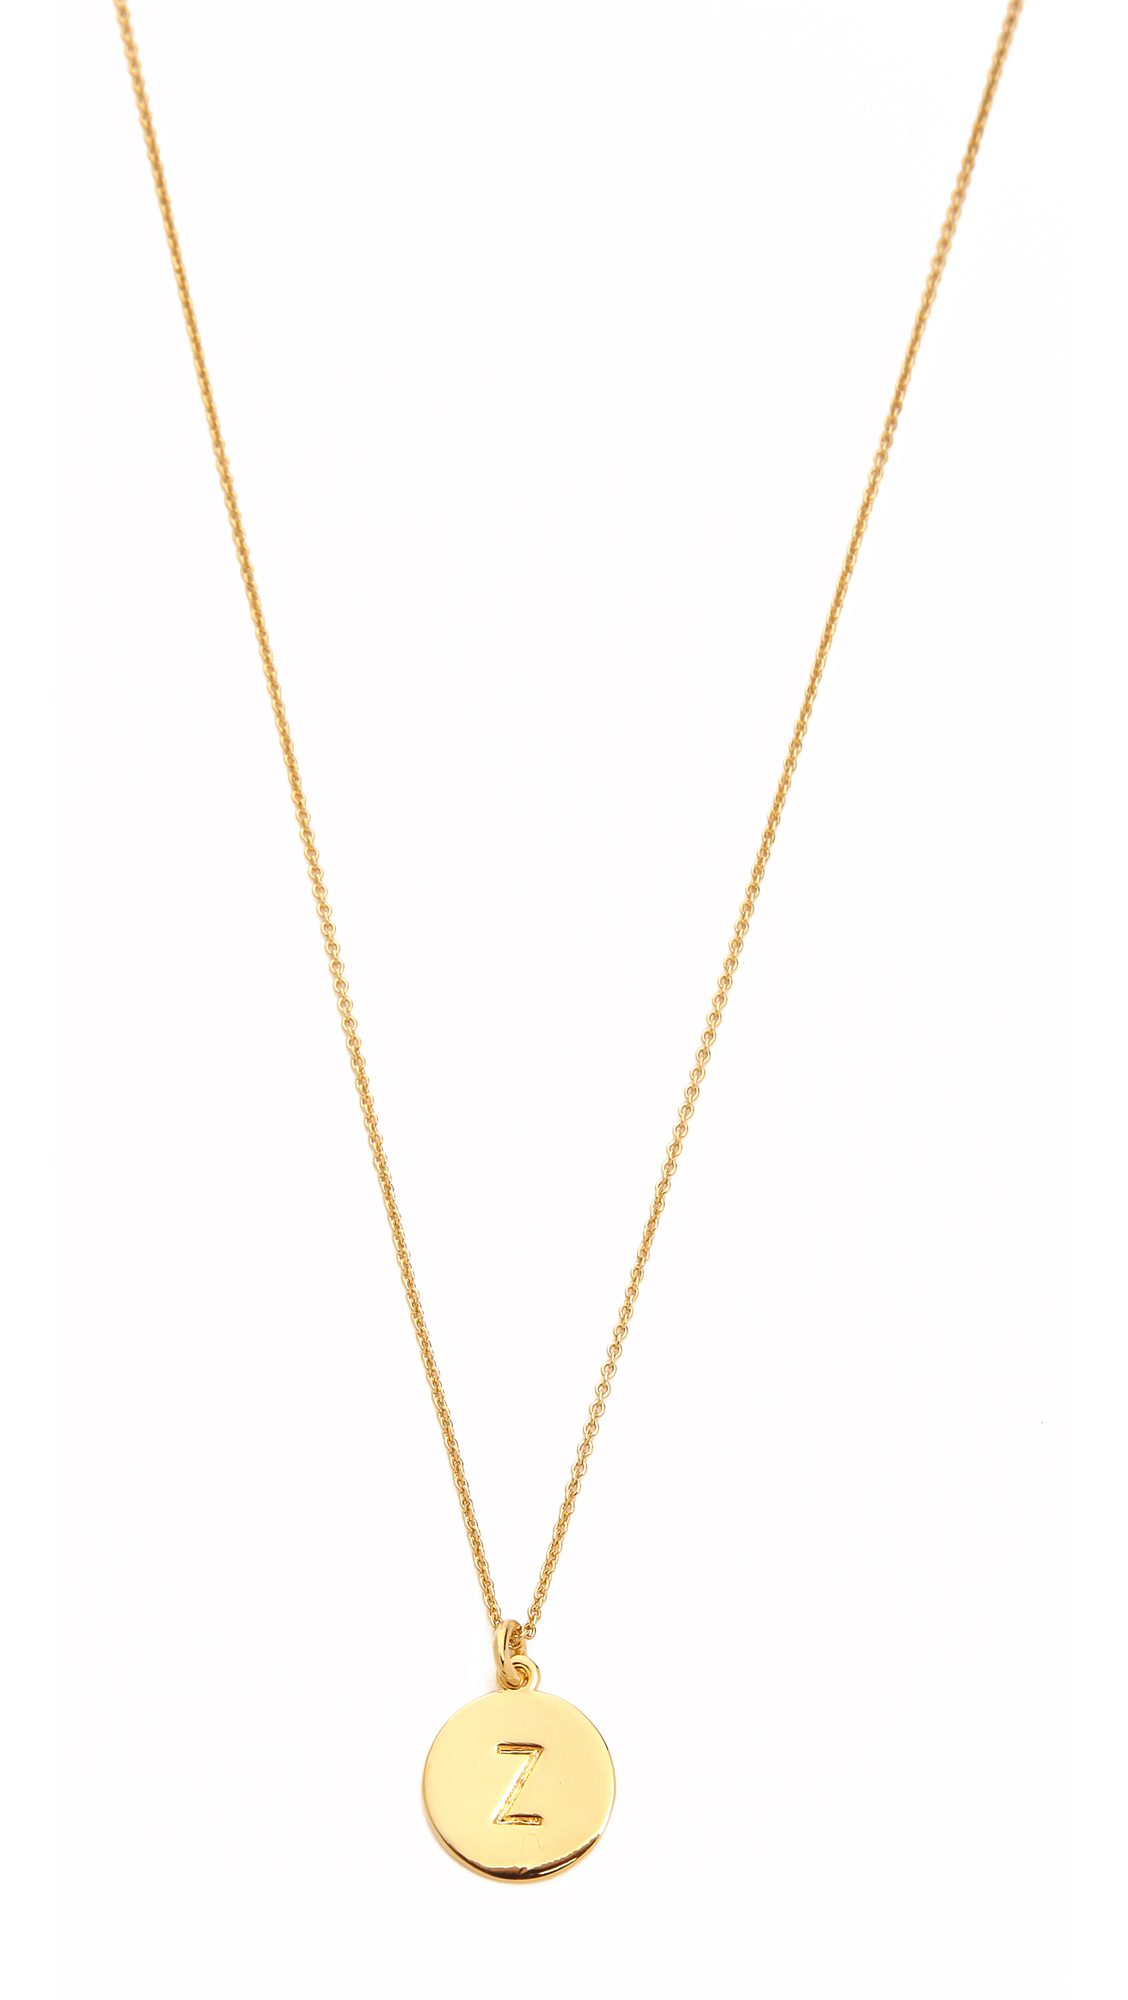 Kate spade letter pendant necklace in gold z lyst for Letter s necklace gold